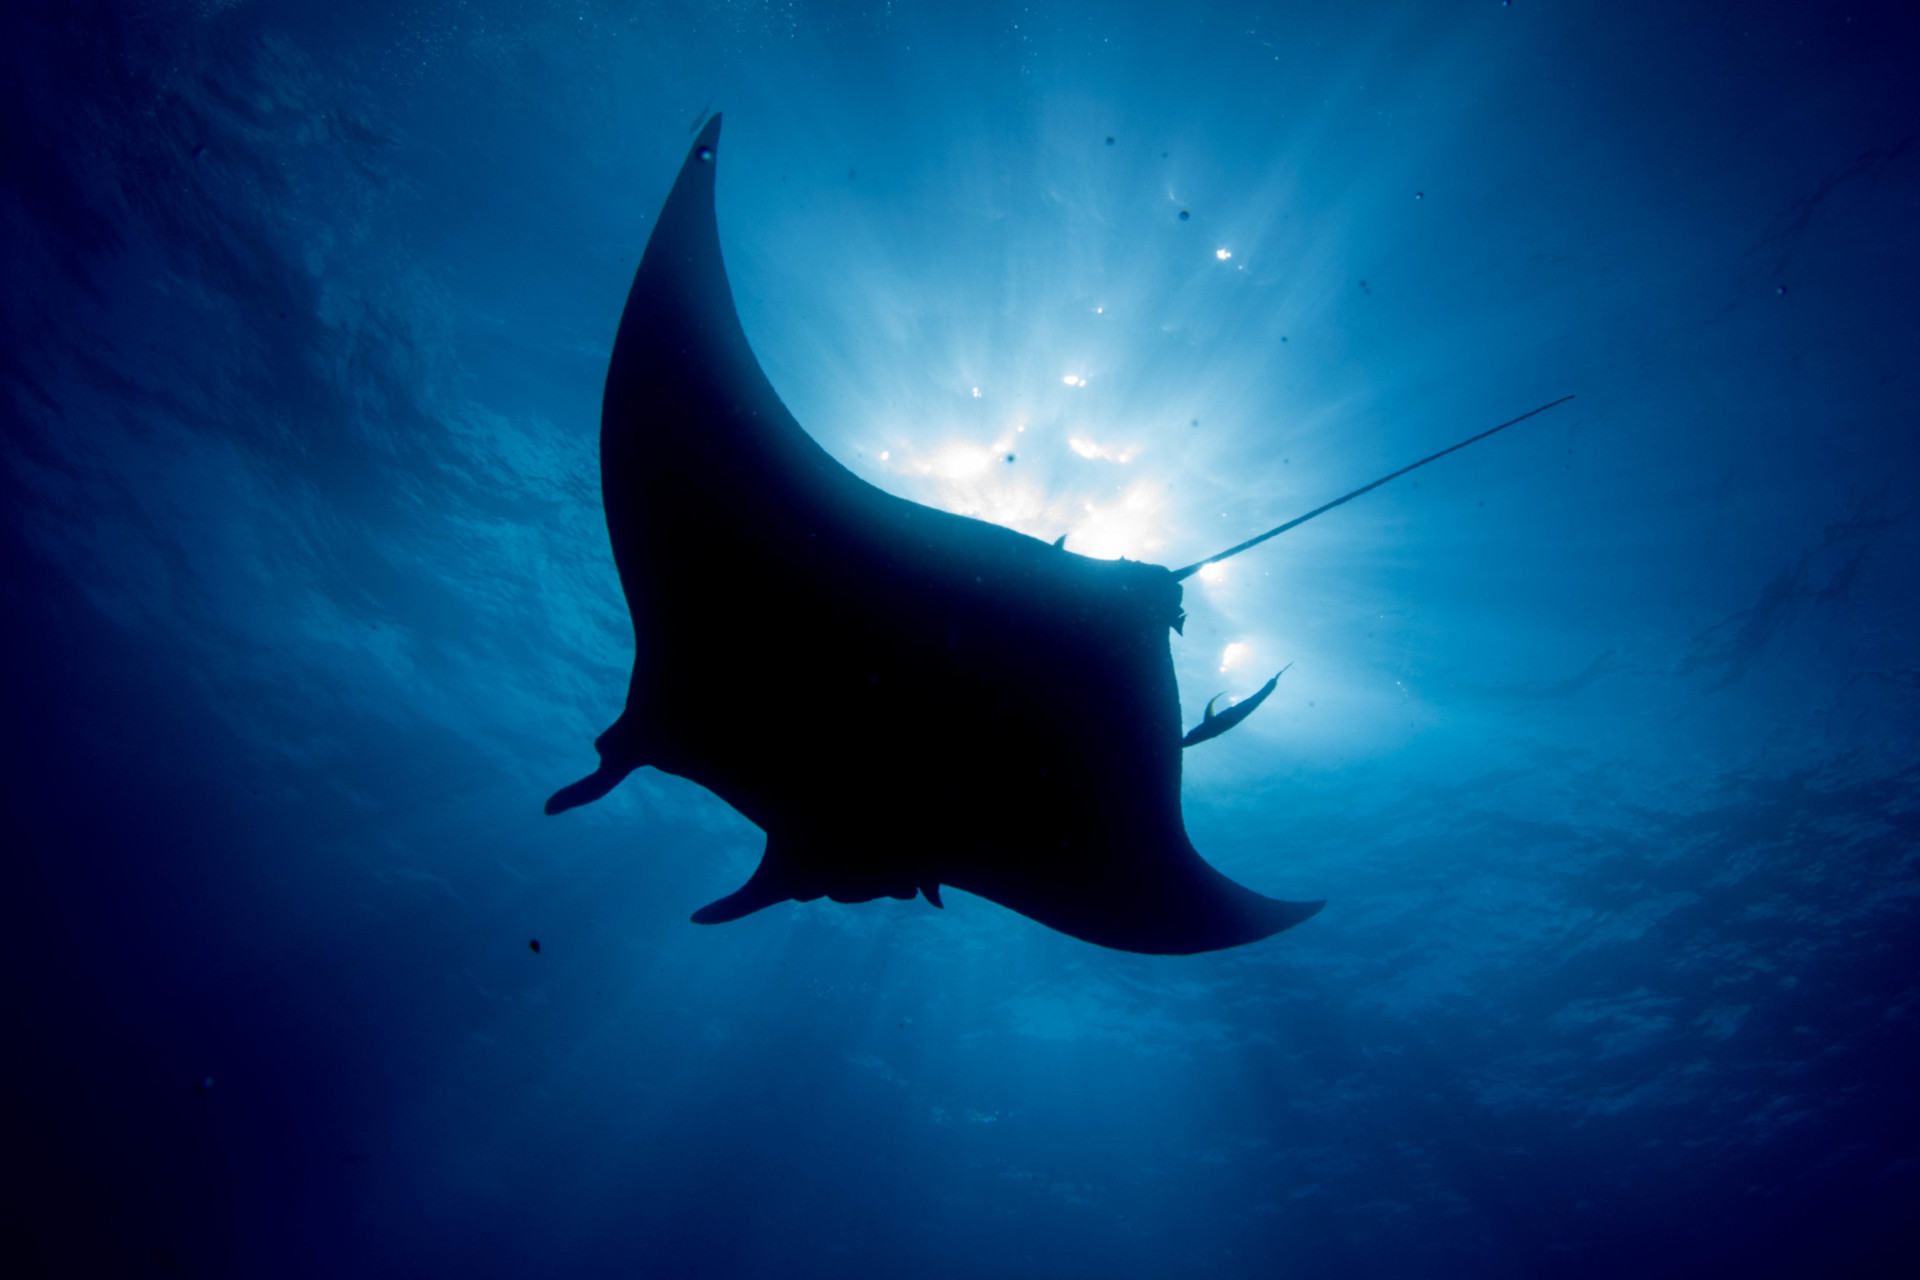 https://indojunkie.com/wp-content/uploads/manta-rochen-indonesien-8.jpg